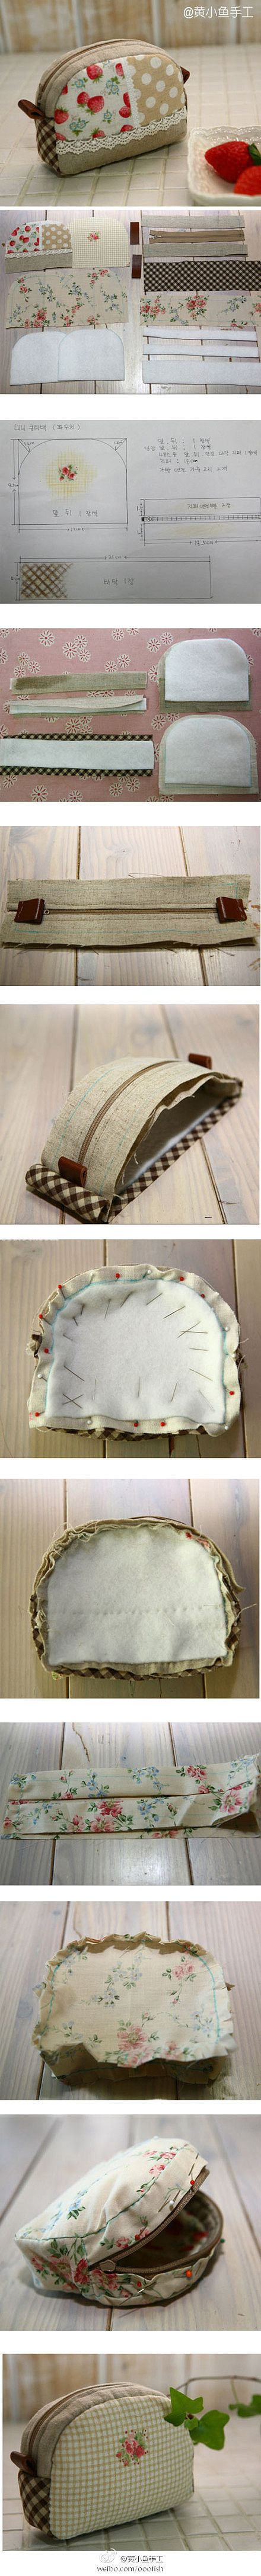 Cute pouch photo tutorial. Je ne comprends pas la langue, mais les photos sont très parlantes!